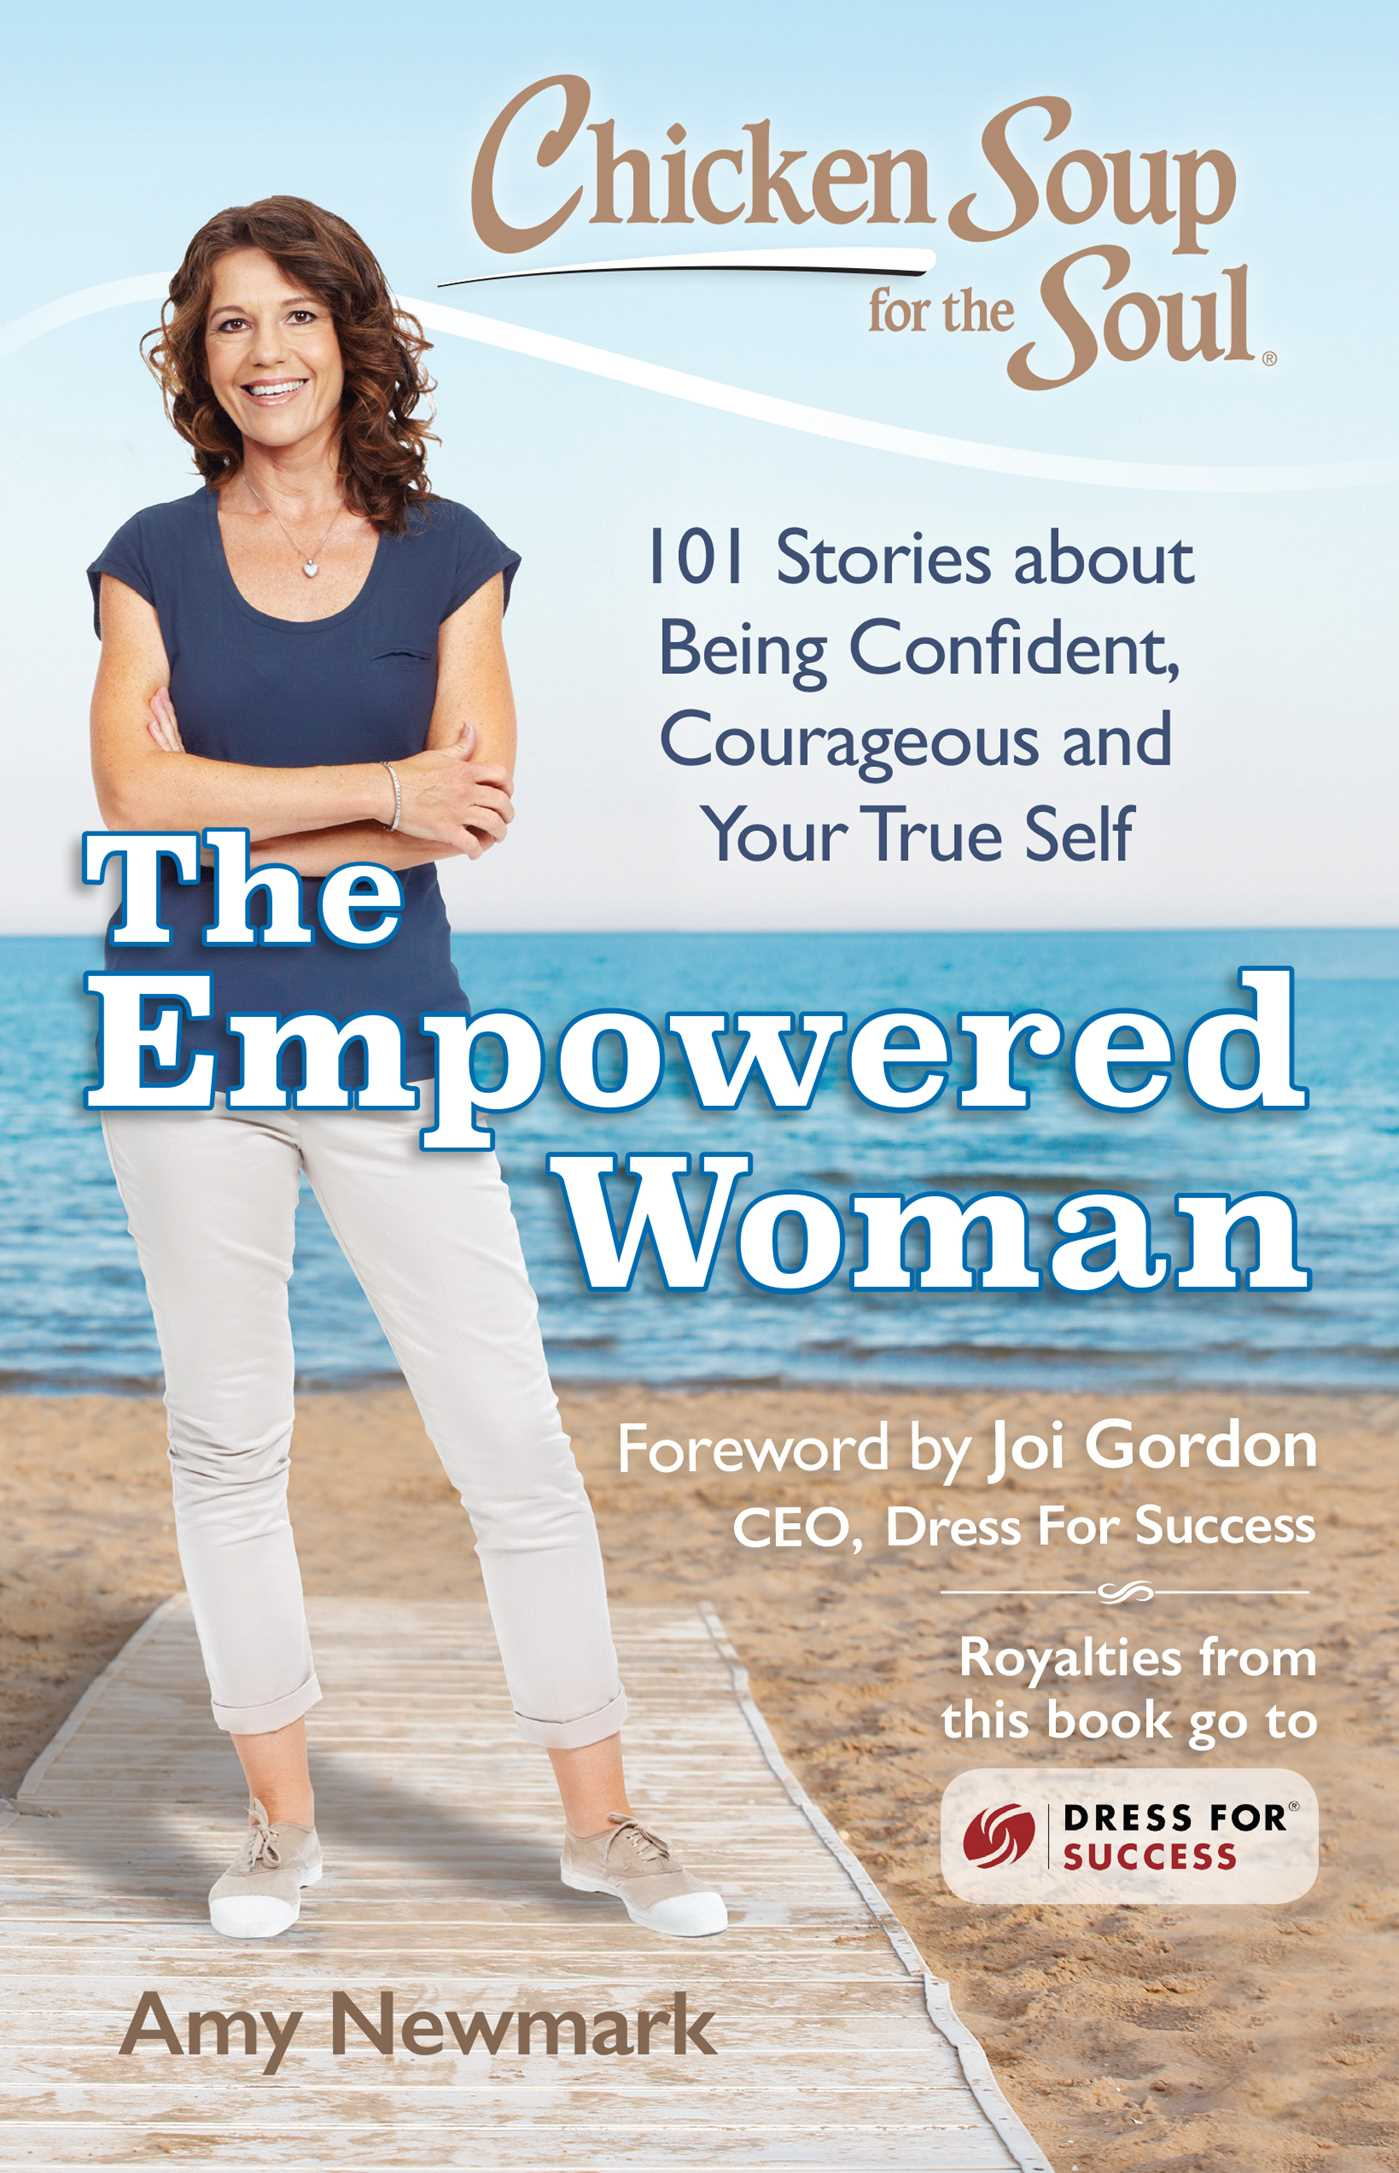 Chicken soup for the soul the empowered woman 9781611599817 hr